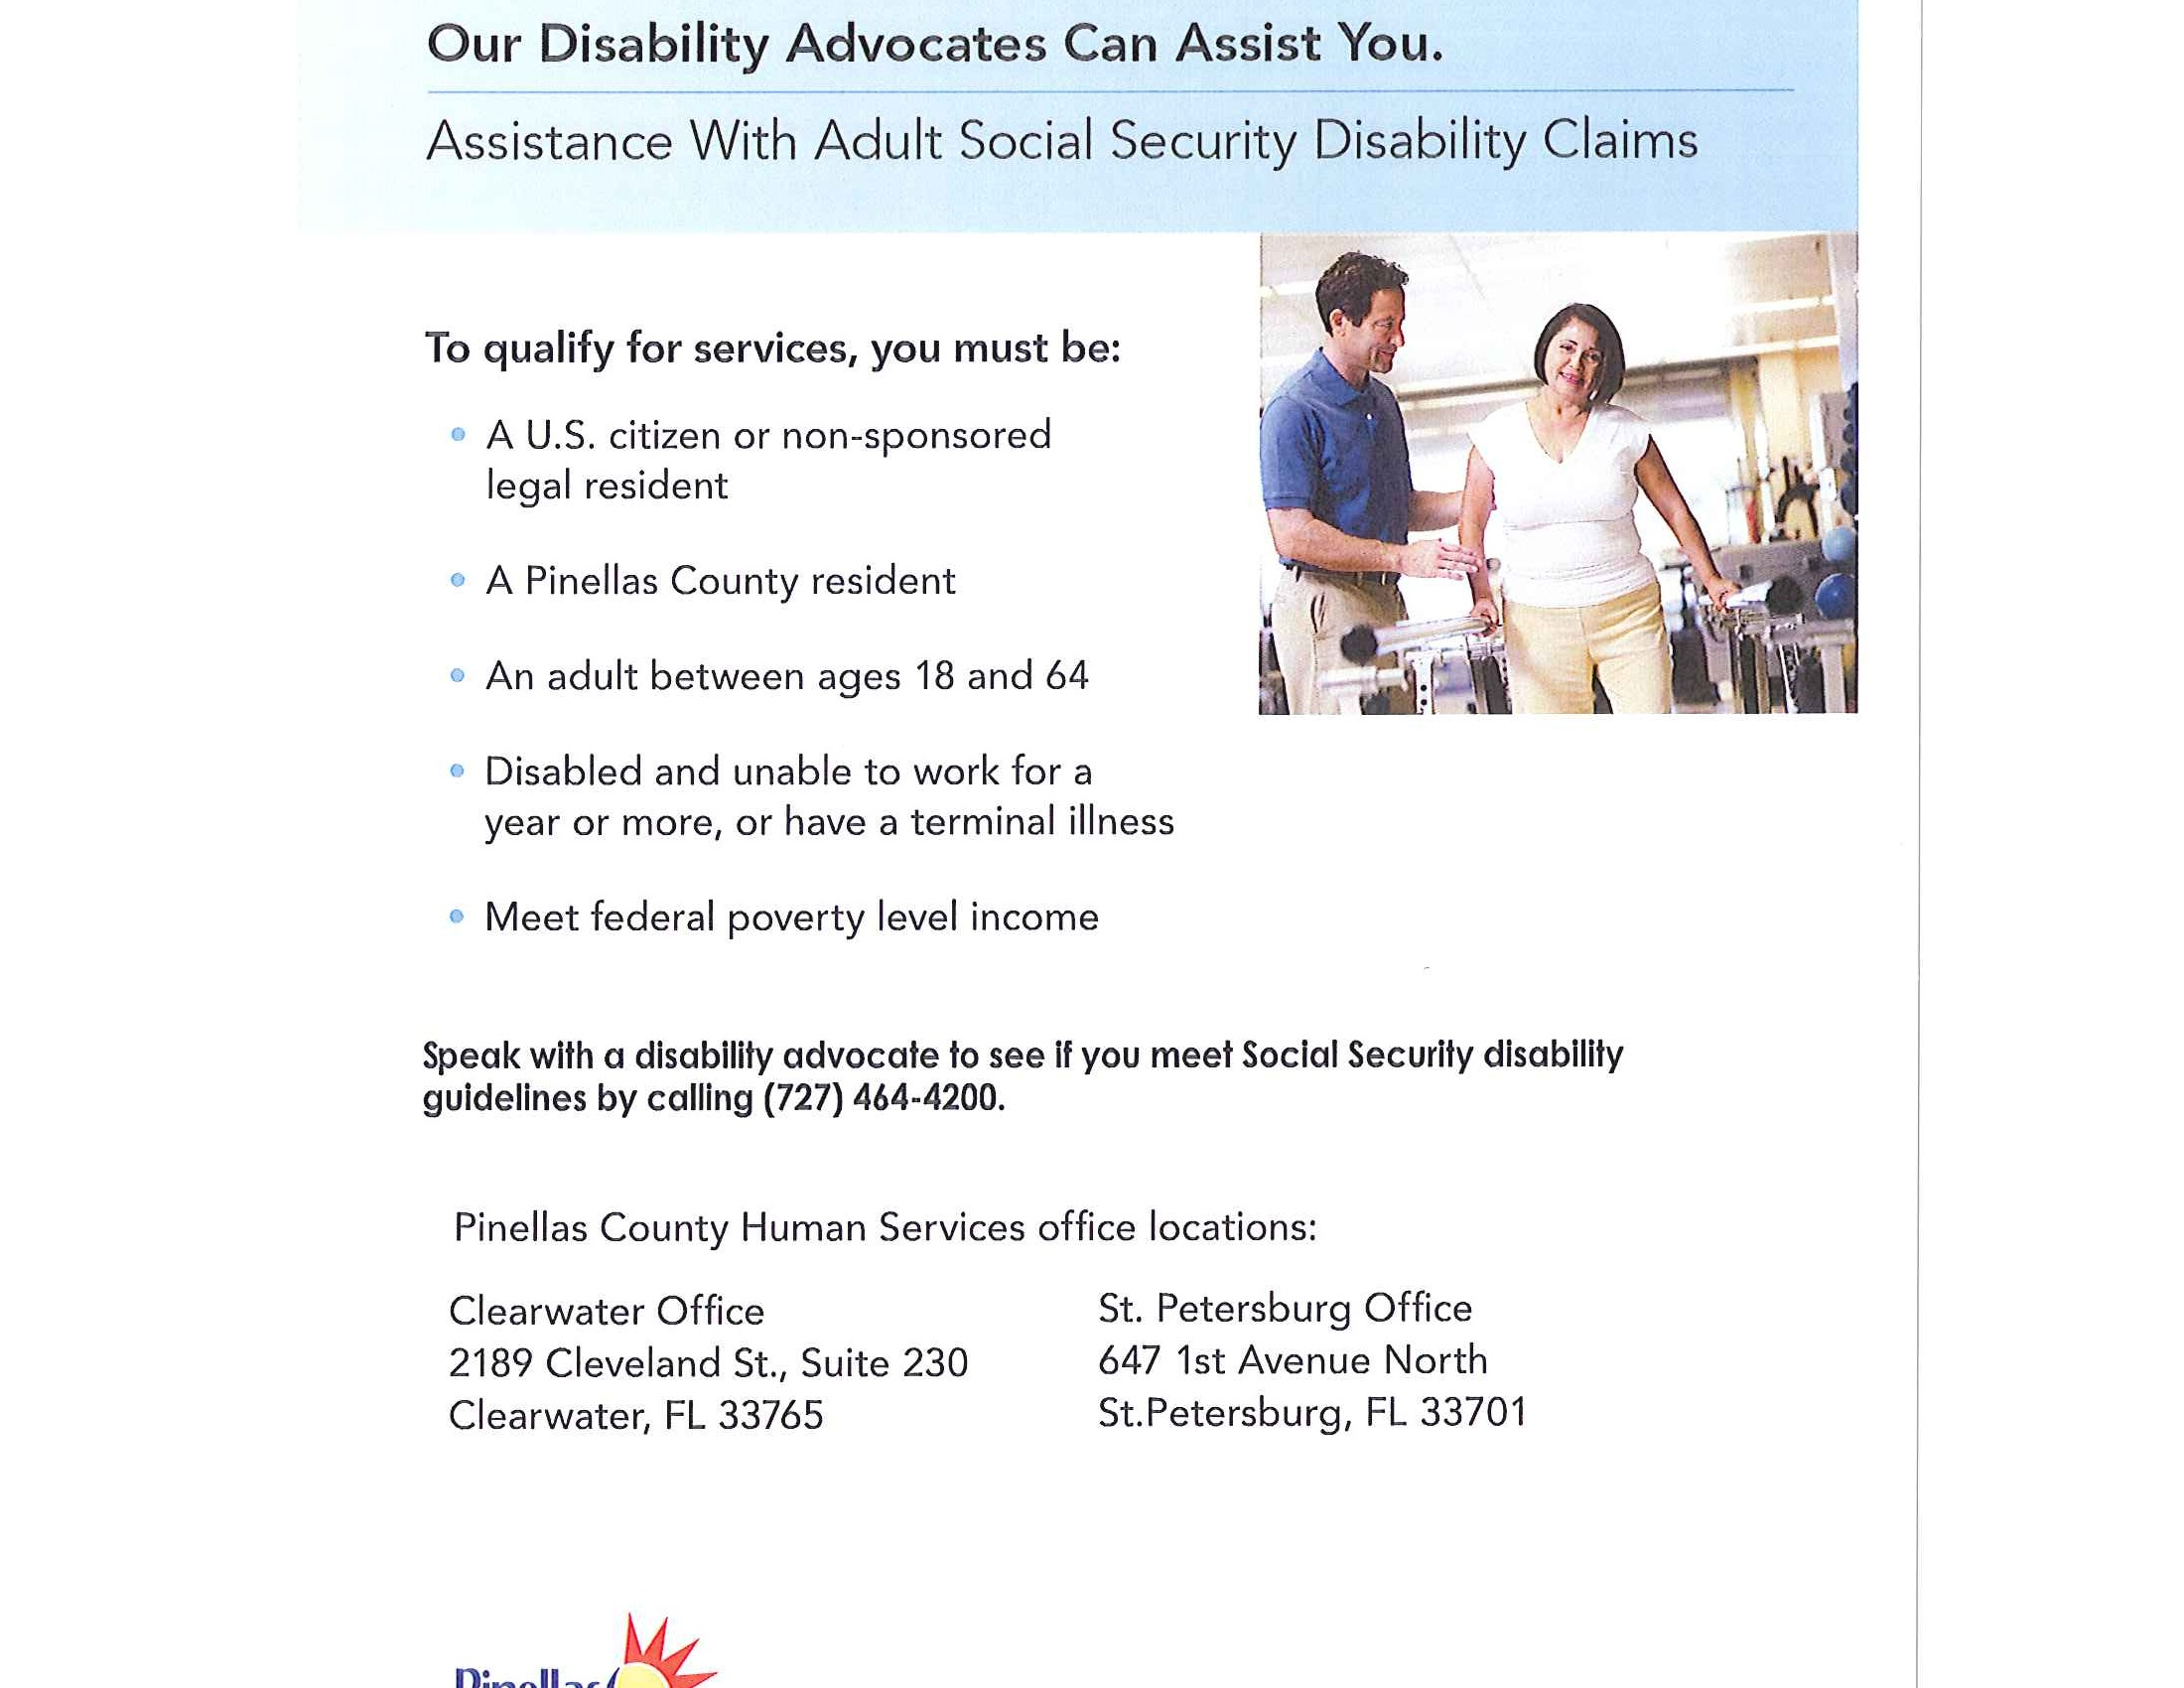 FREE Social Security Disability Claim Assistance!